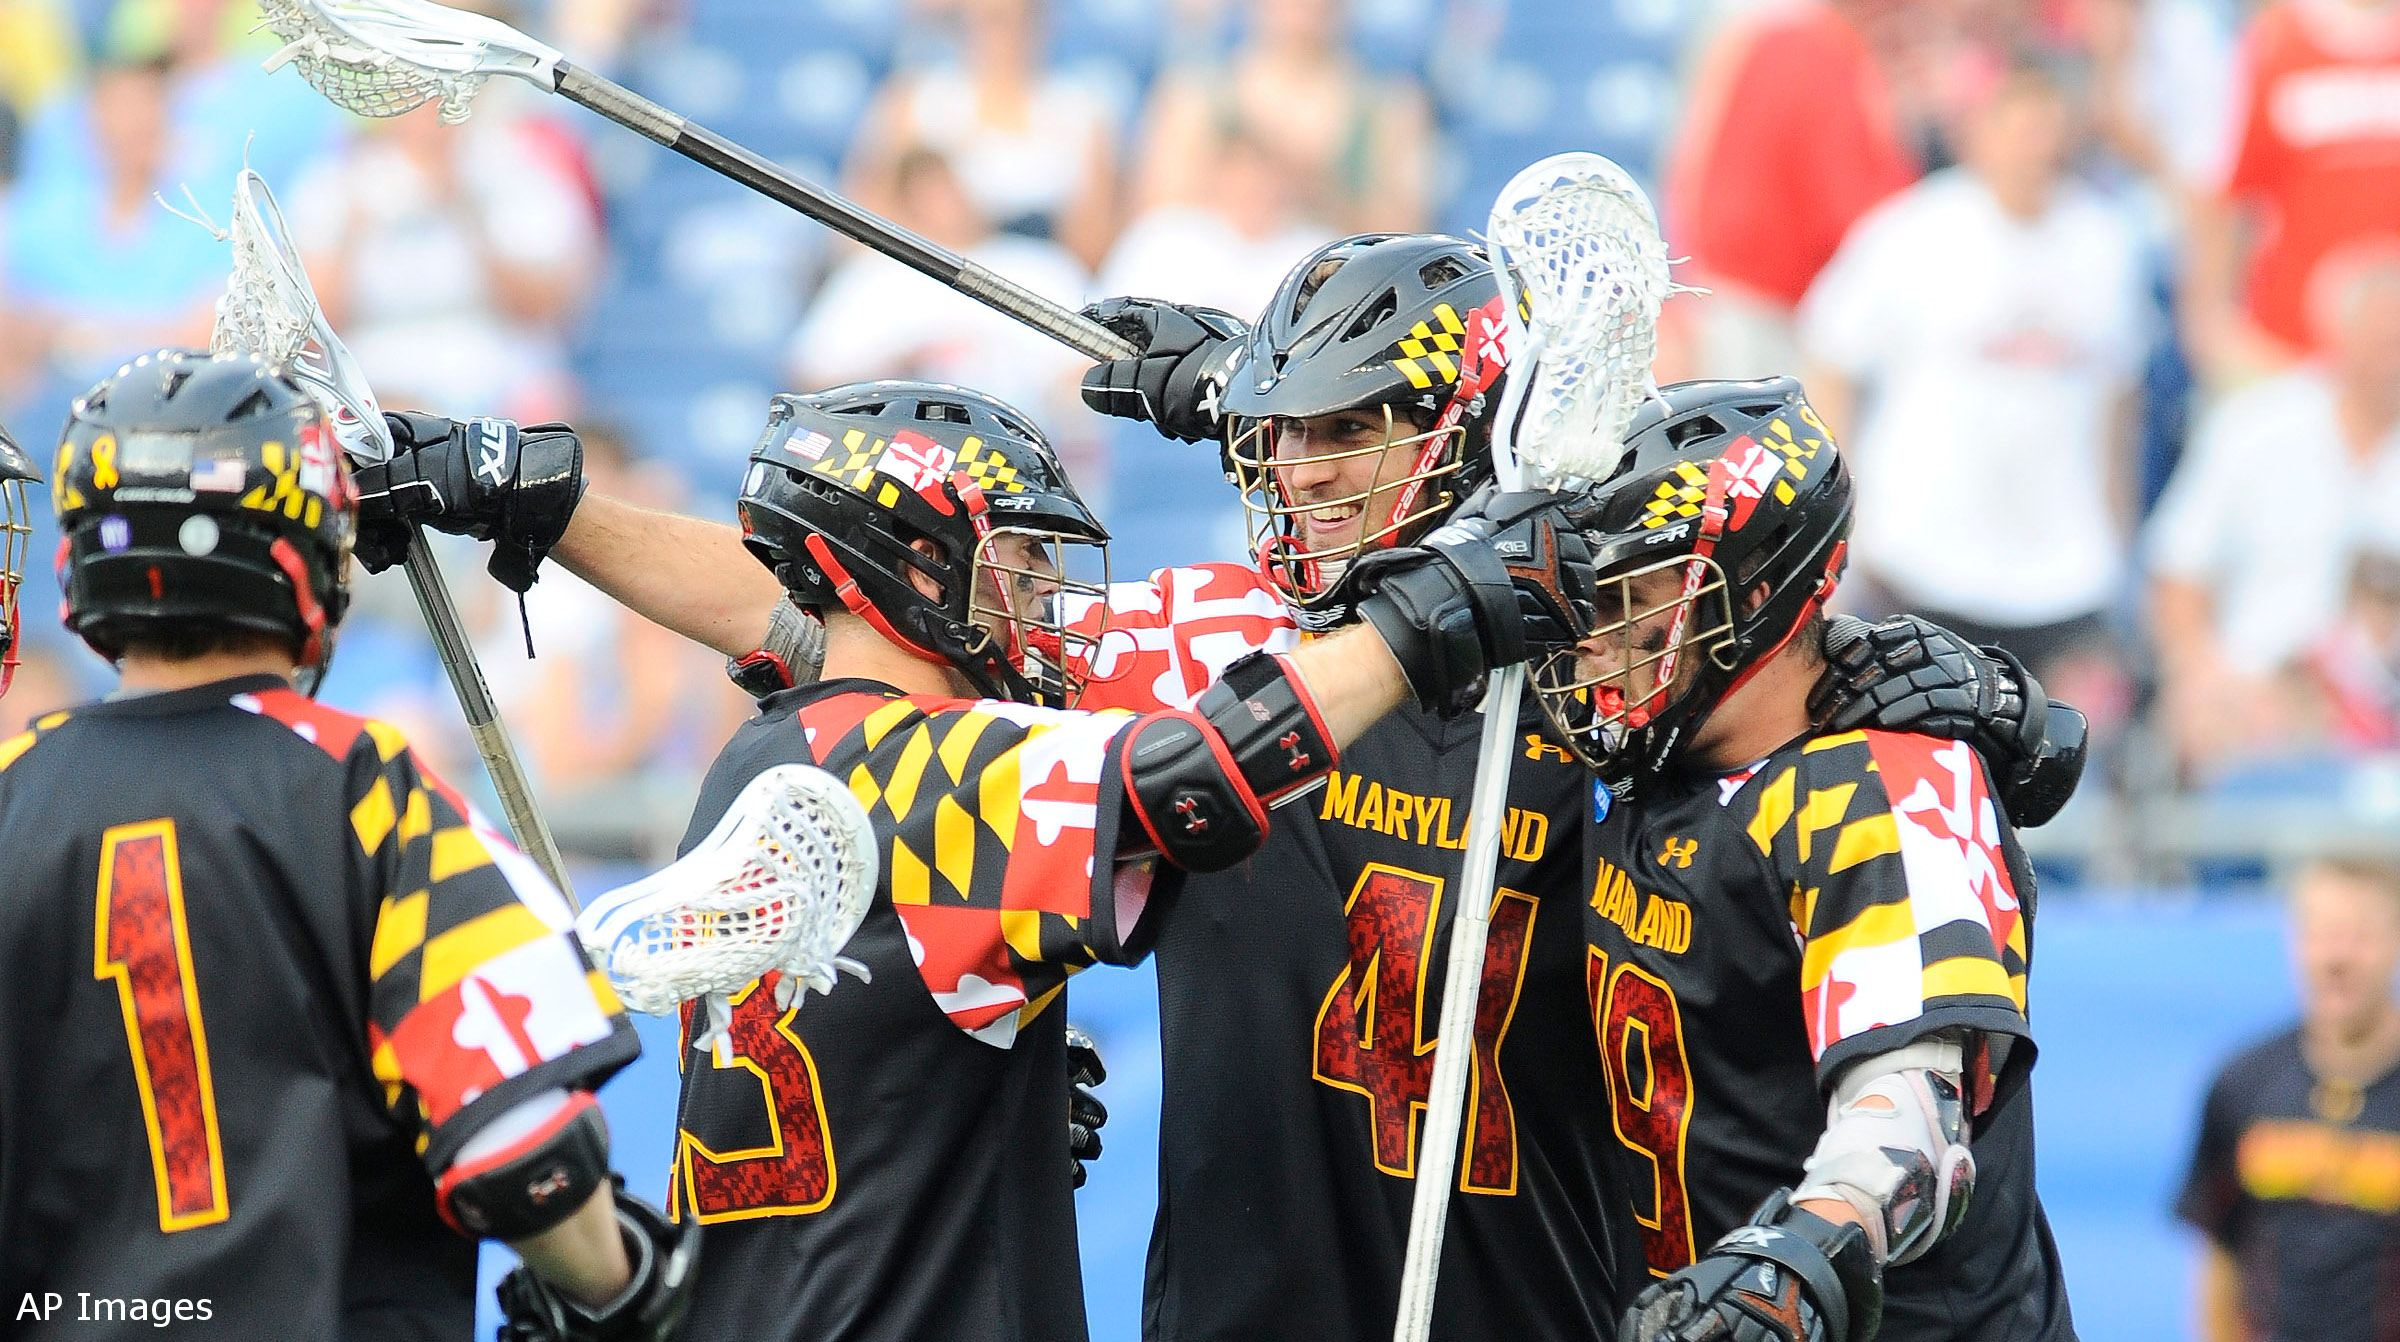 Maryland Wins